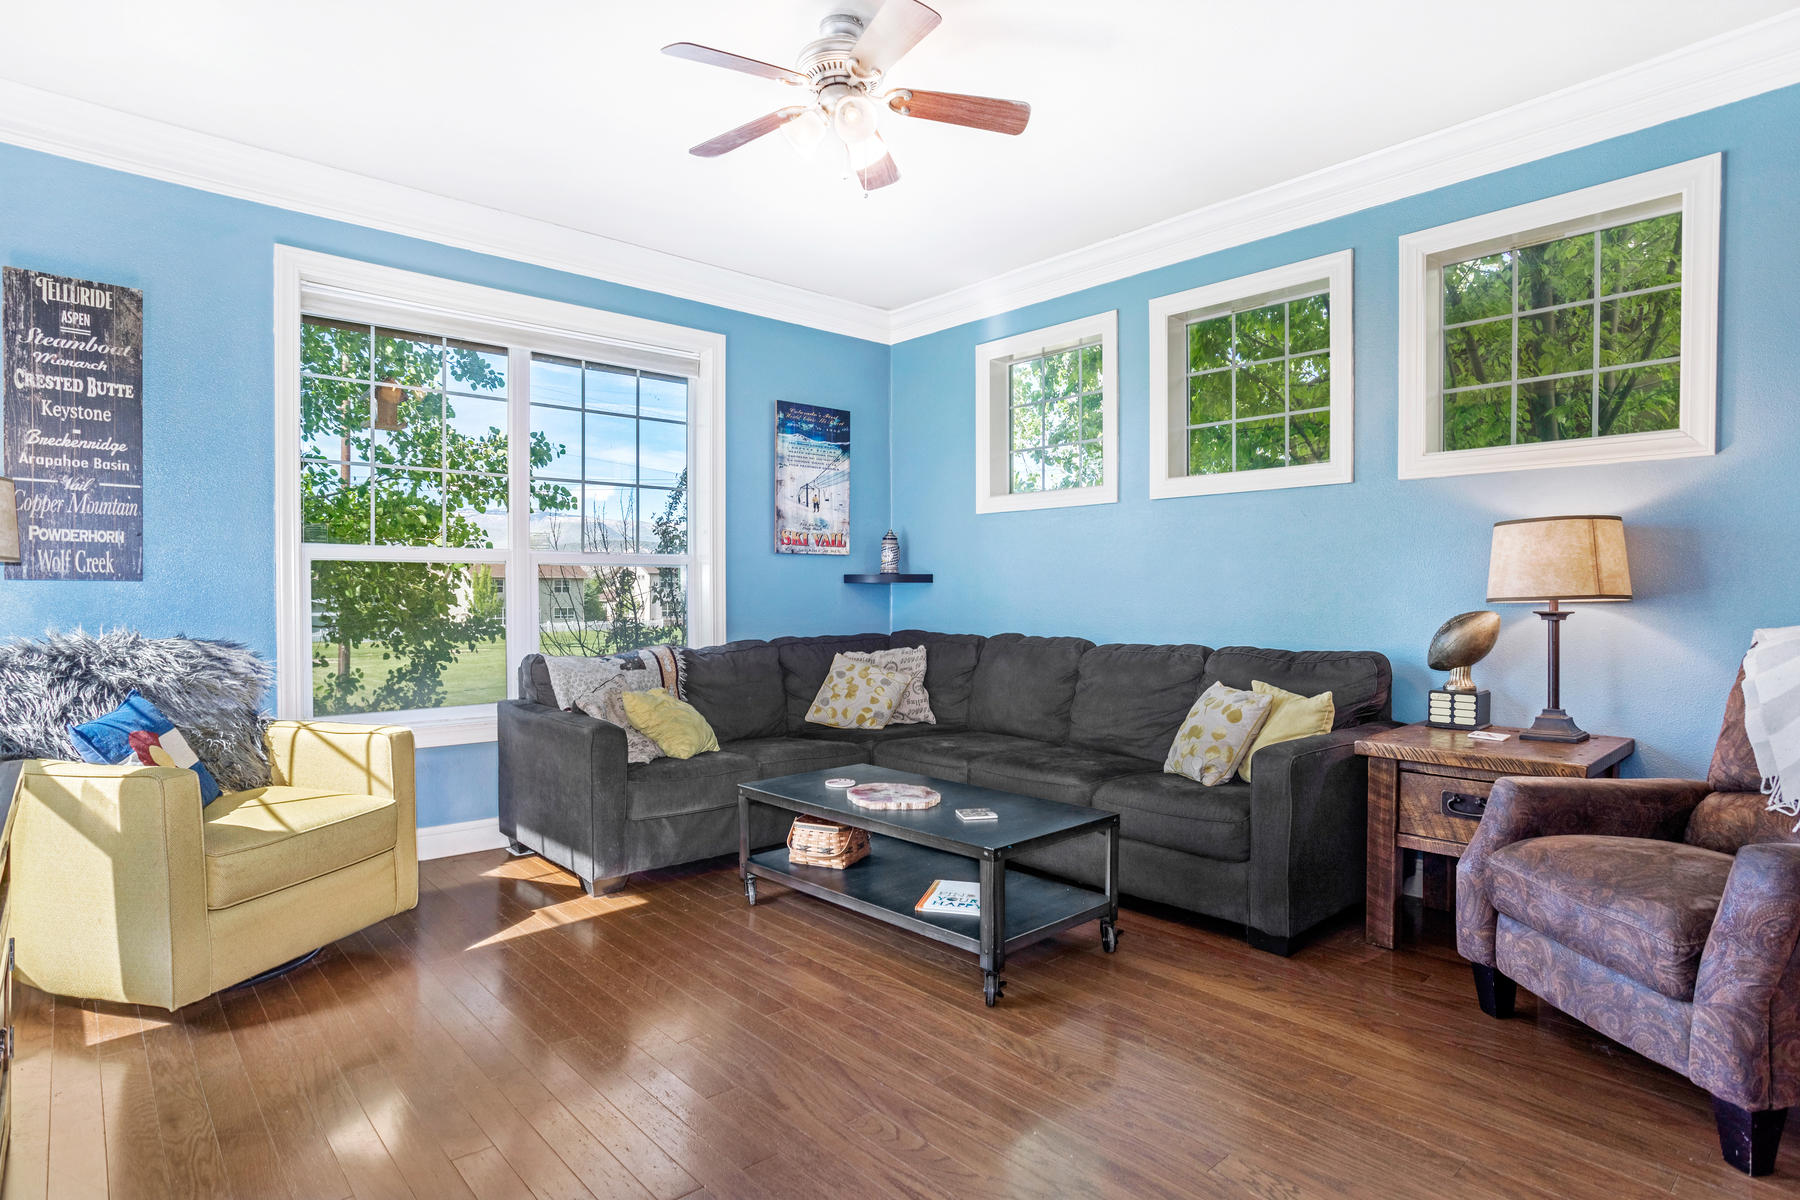 Single Family Homes for Sale at Spacious single family with views of Castle Peak 44 Wolf Creek Drive Gypsum, Colorado 81637 United States